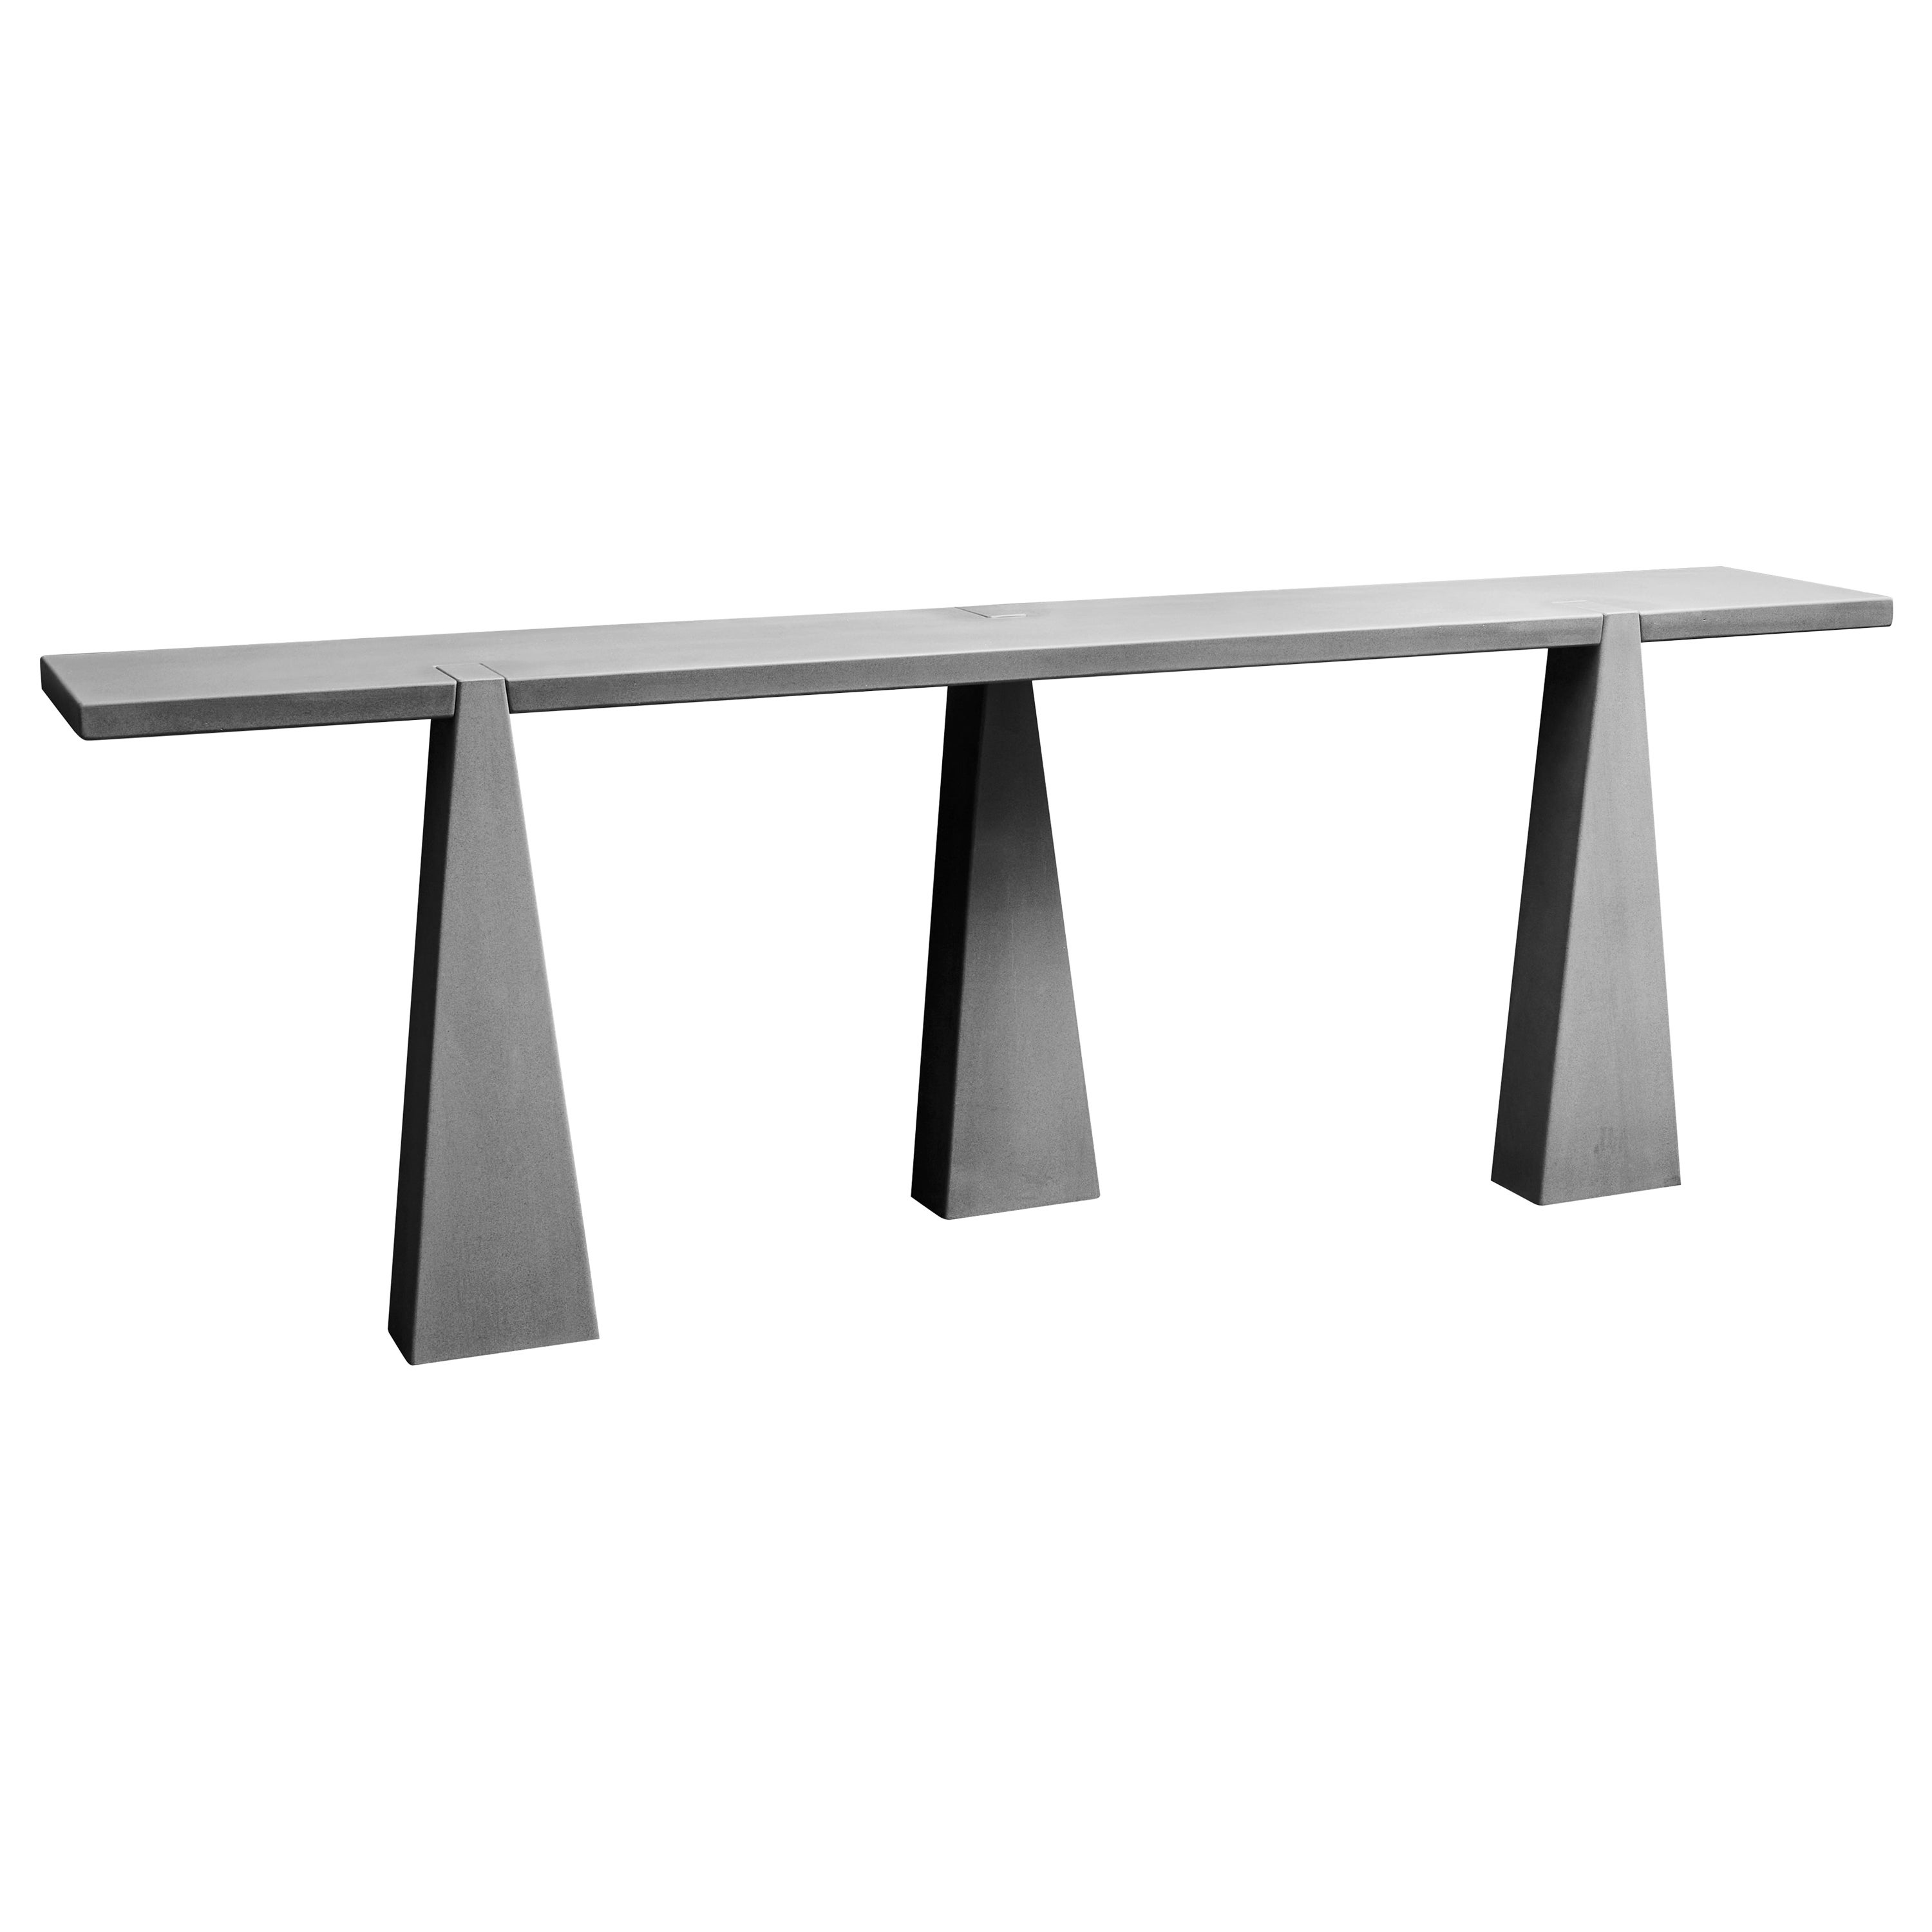 Inca Console Table by Angelo Mangiarotti for Skipper in 1978